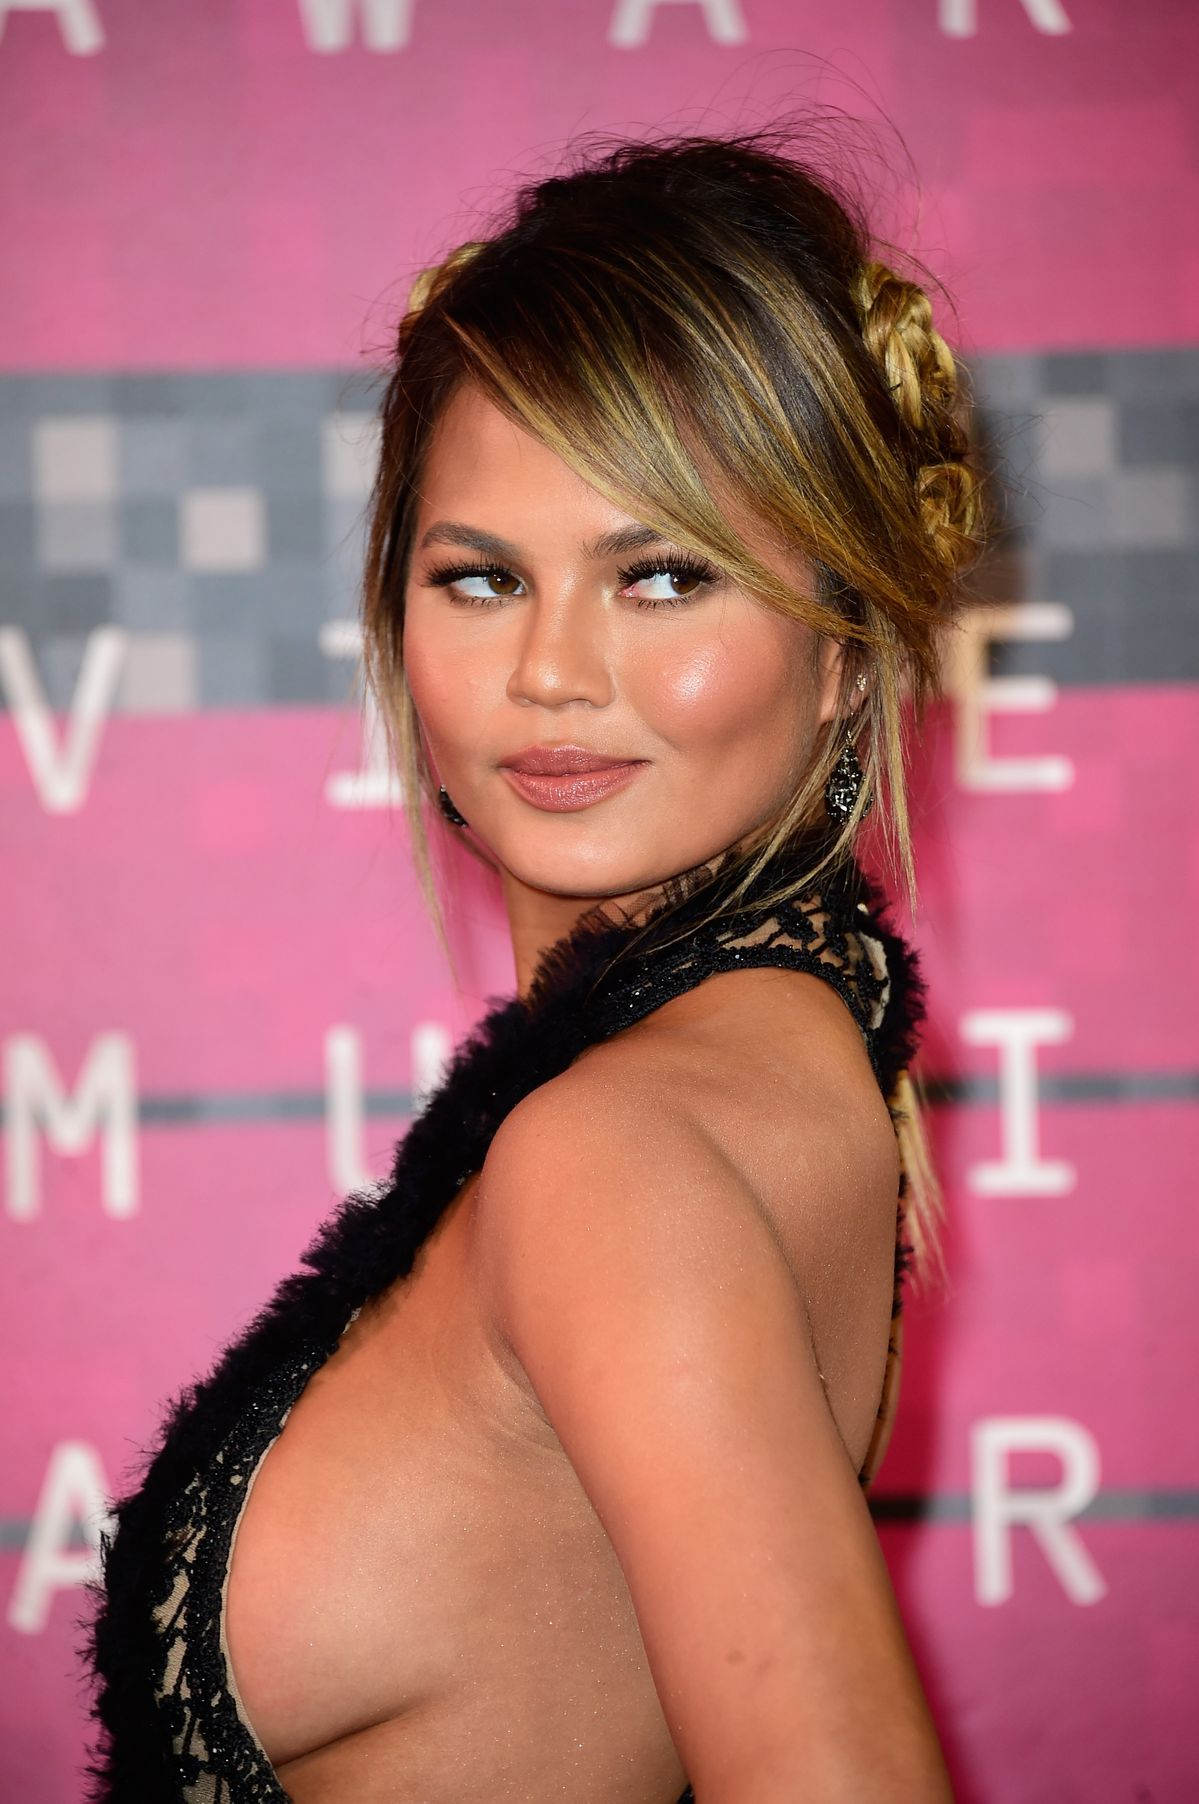 Sexy photos of Chrissy Teigen  (2)